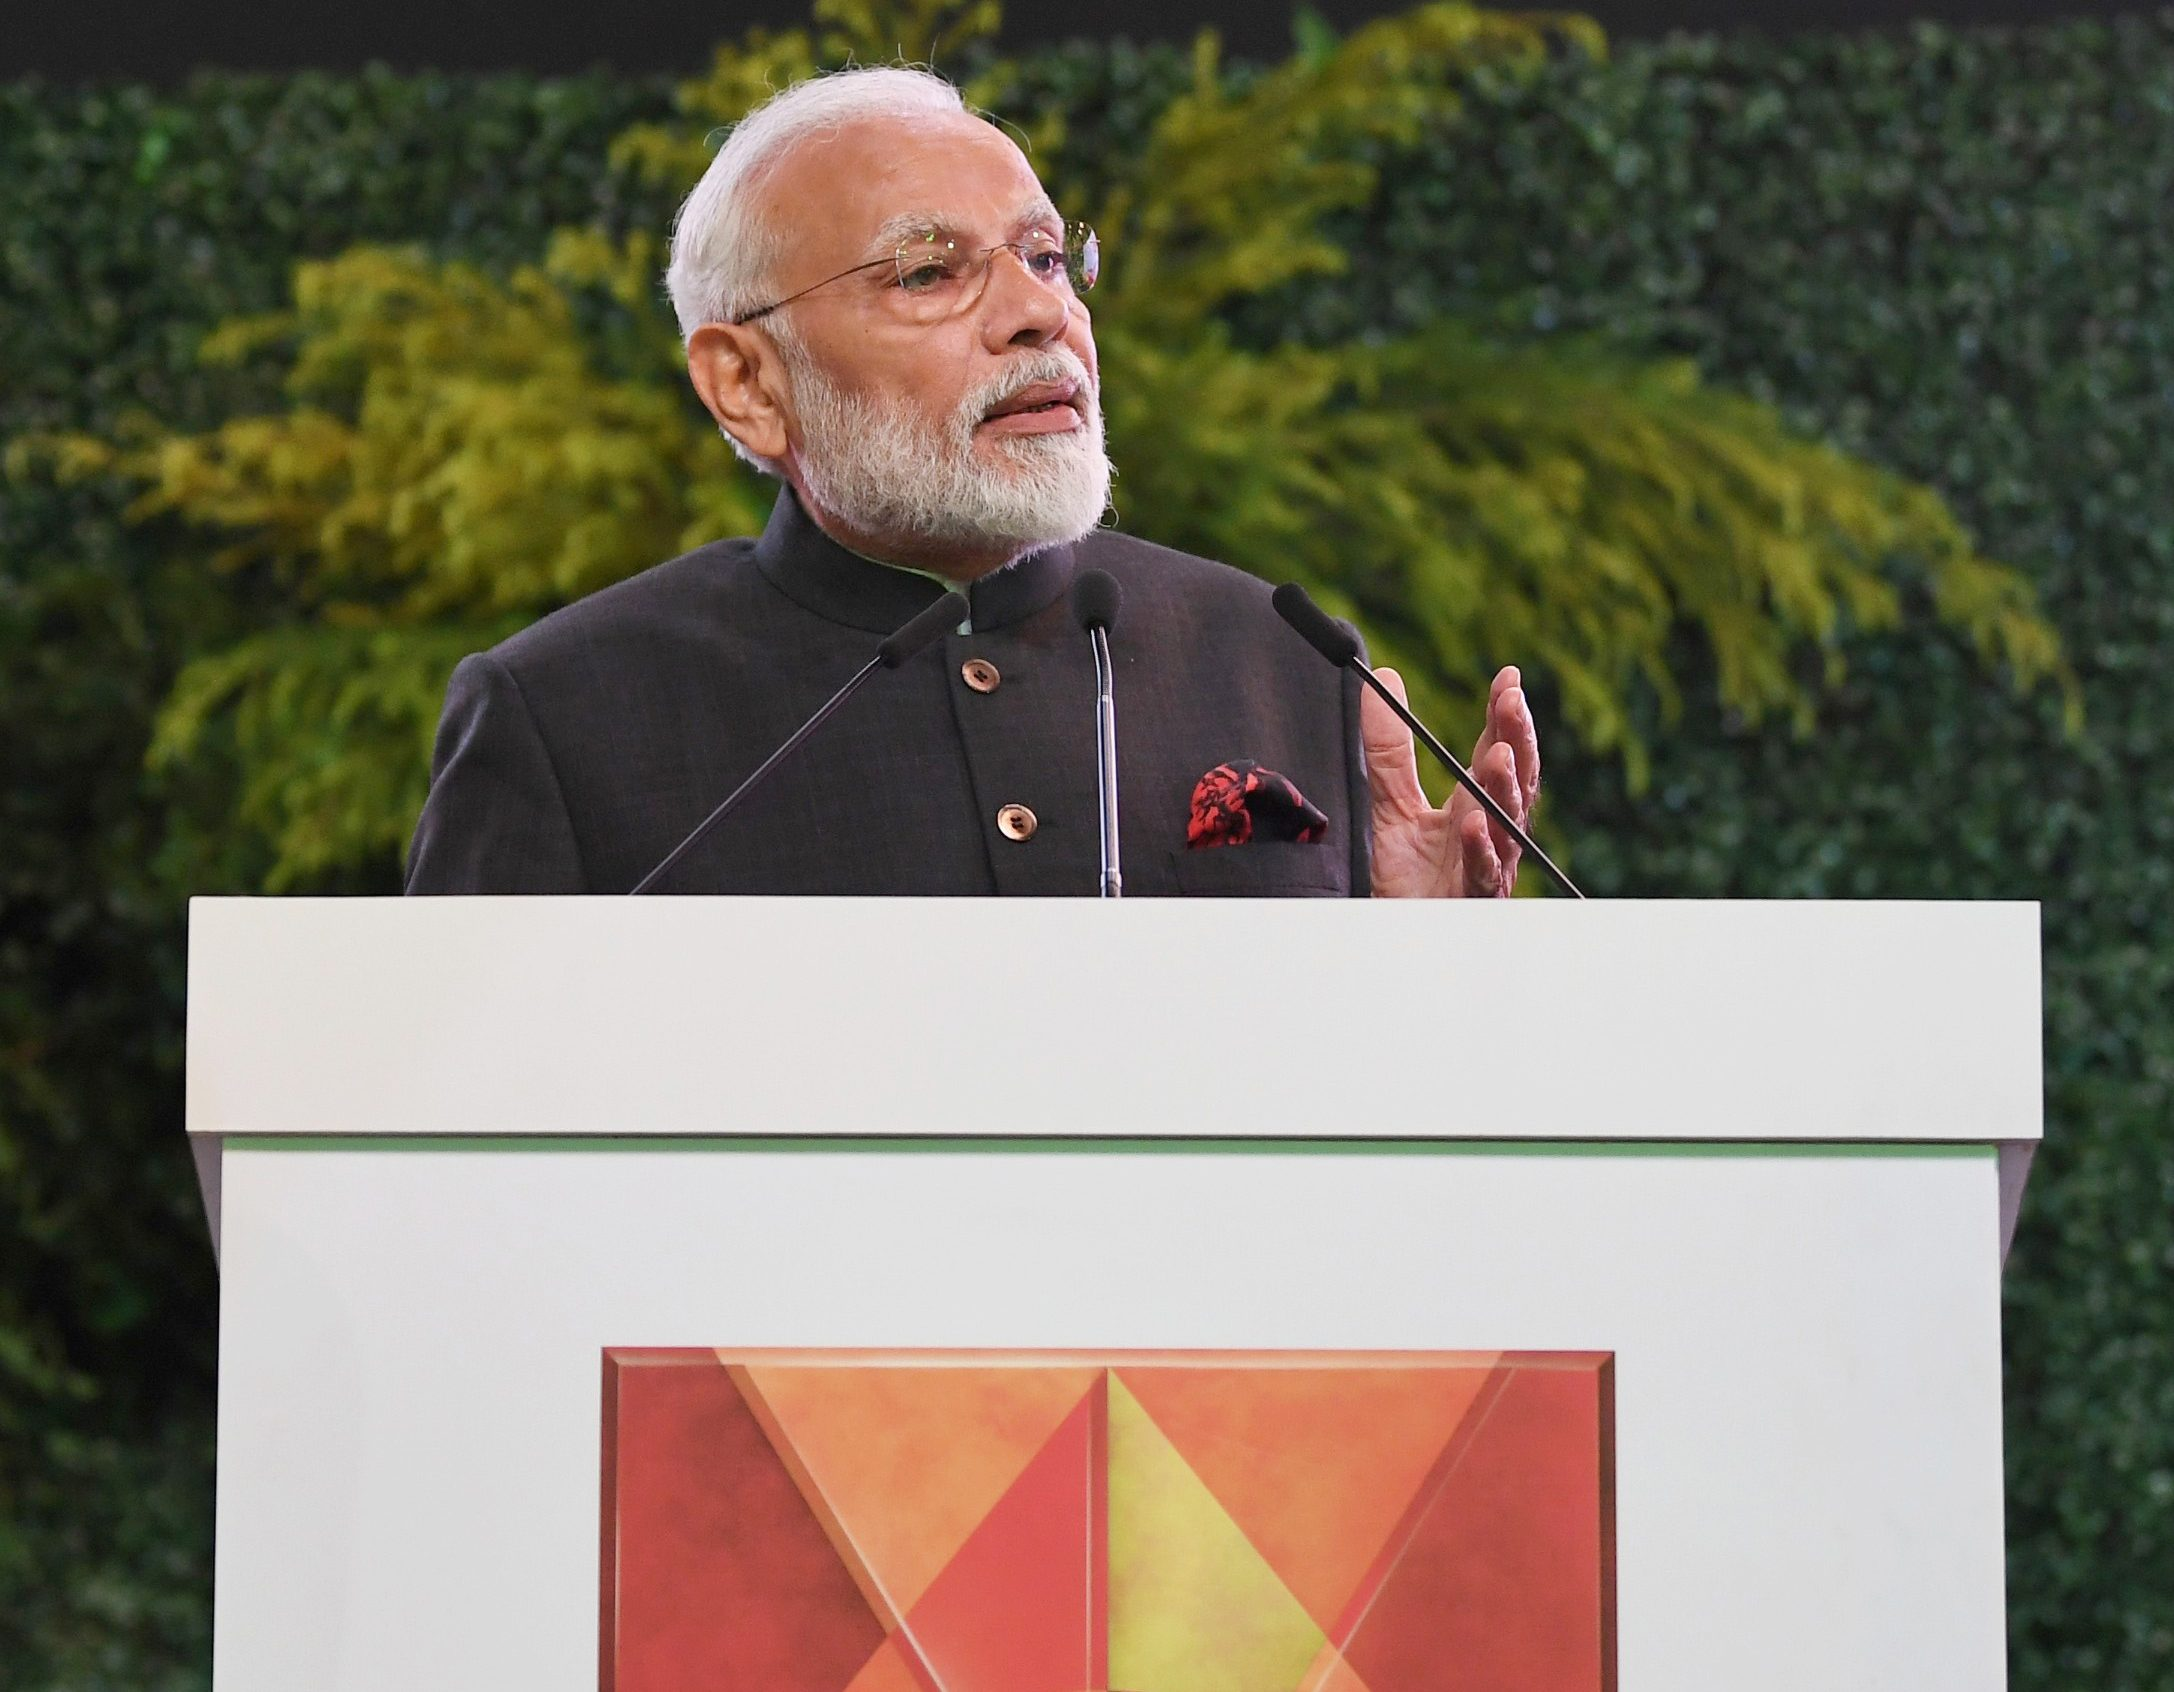 PM's remarks at the Aditya Birla Group Golden Jubilee Celebrations